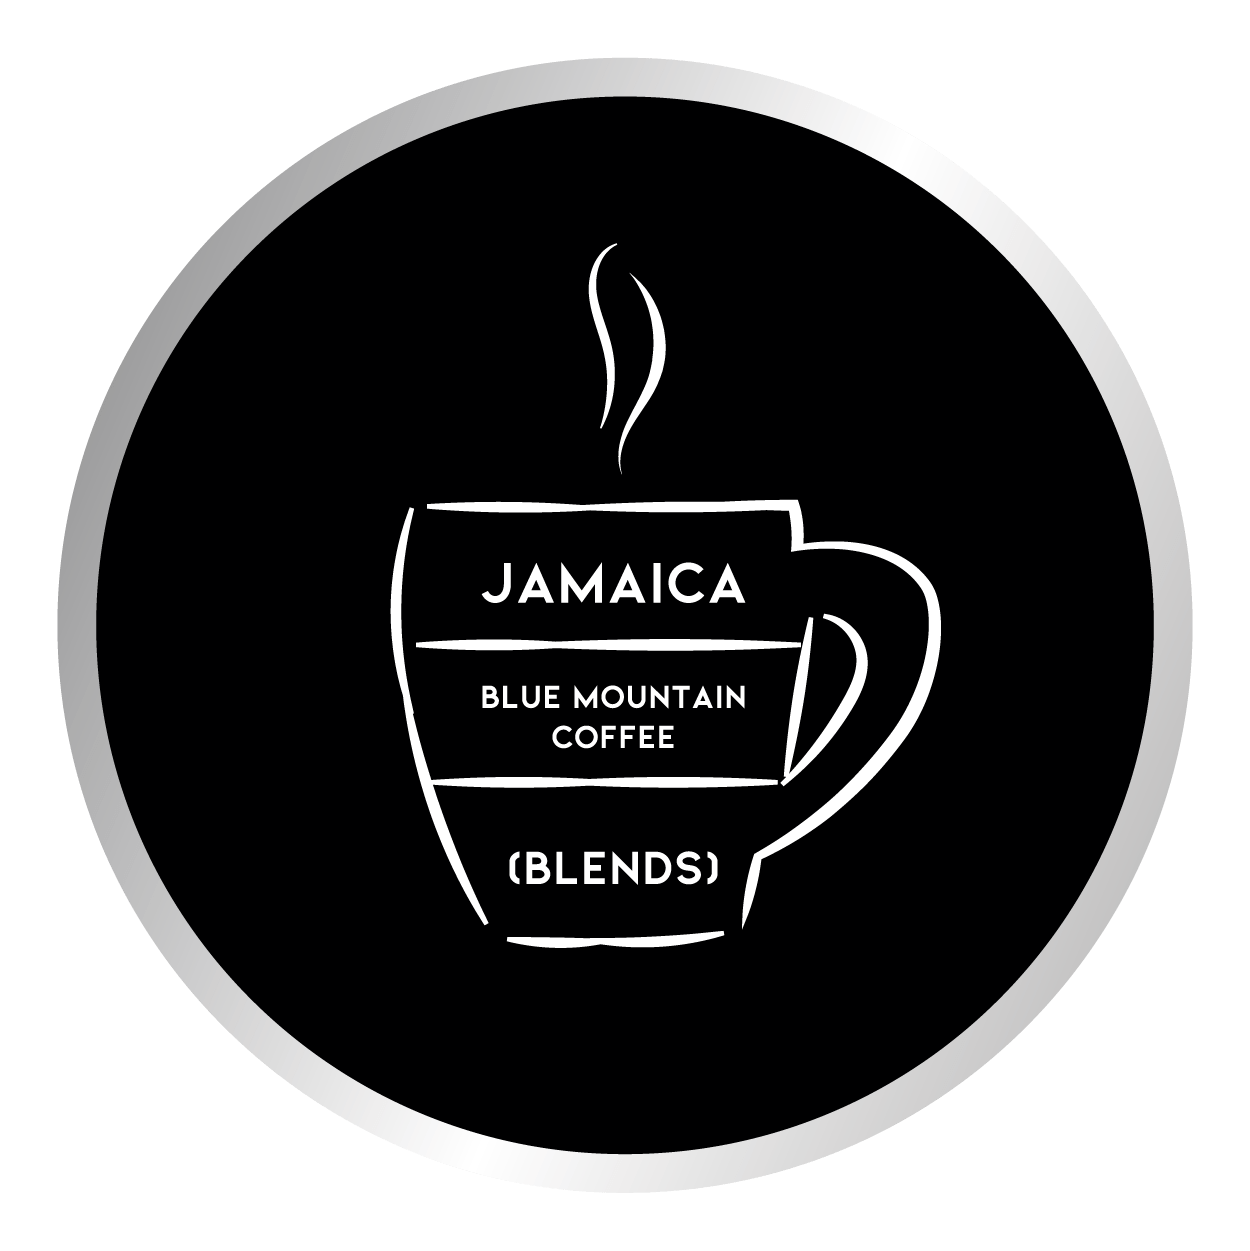 Jamaica Blue Mountain Coffee (Blends)